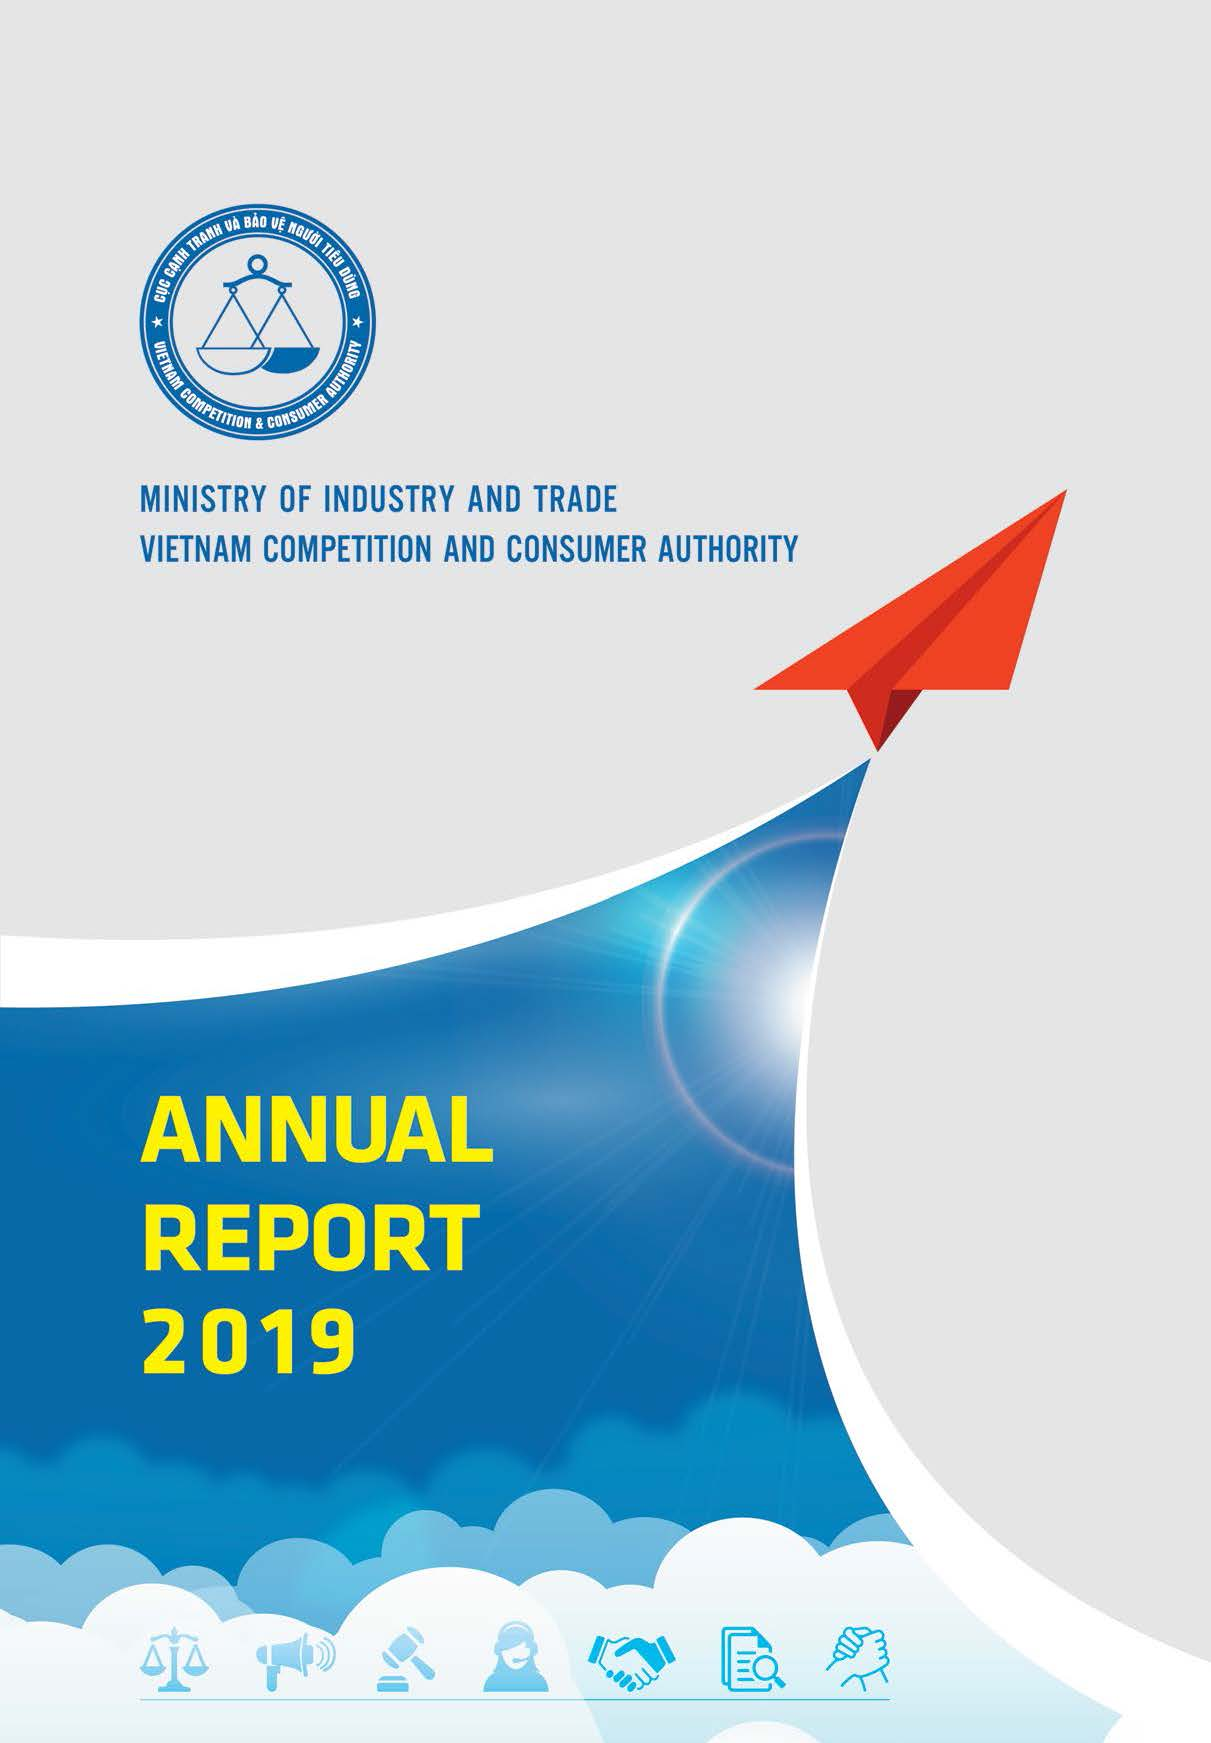 Annual Report Viet Nam Competition and Consumer Authority 2019